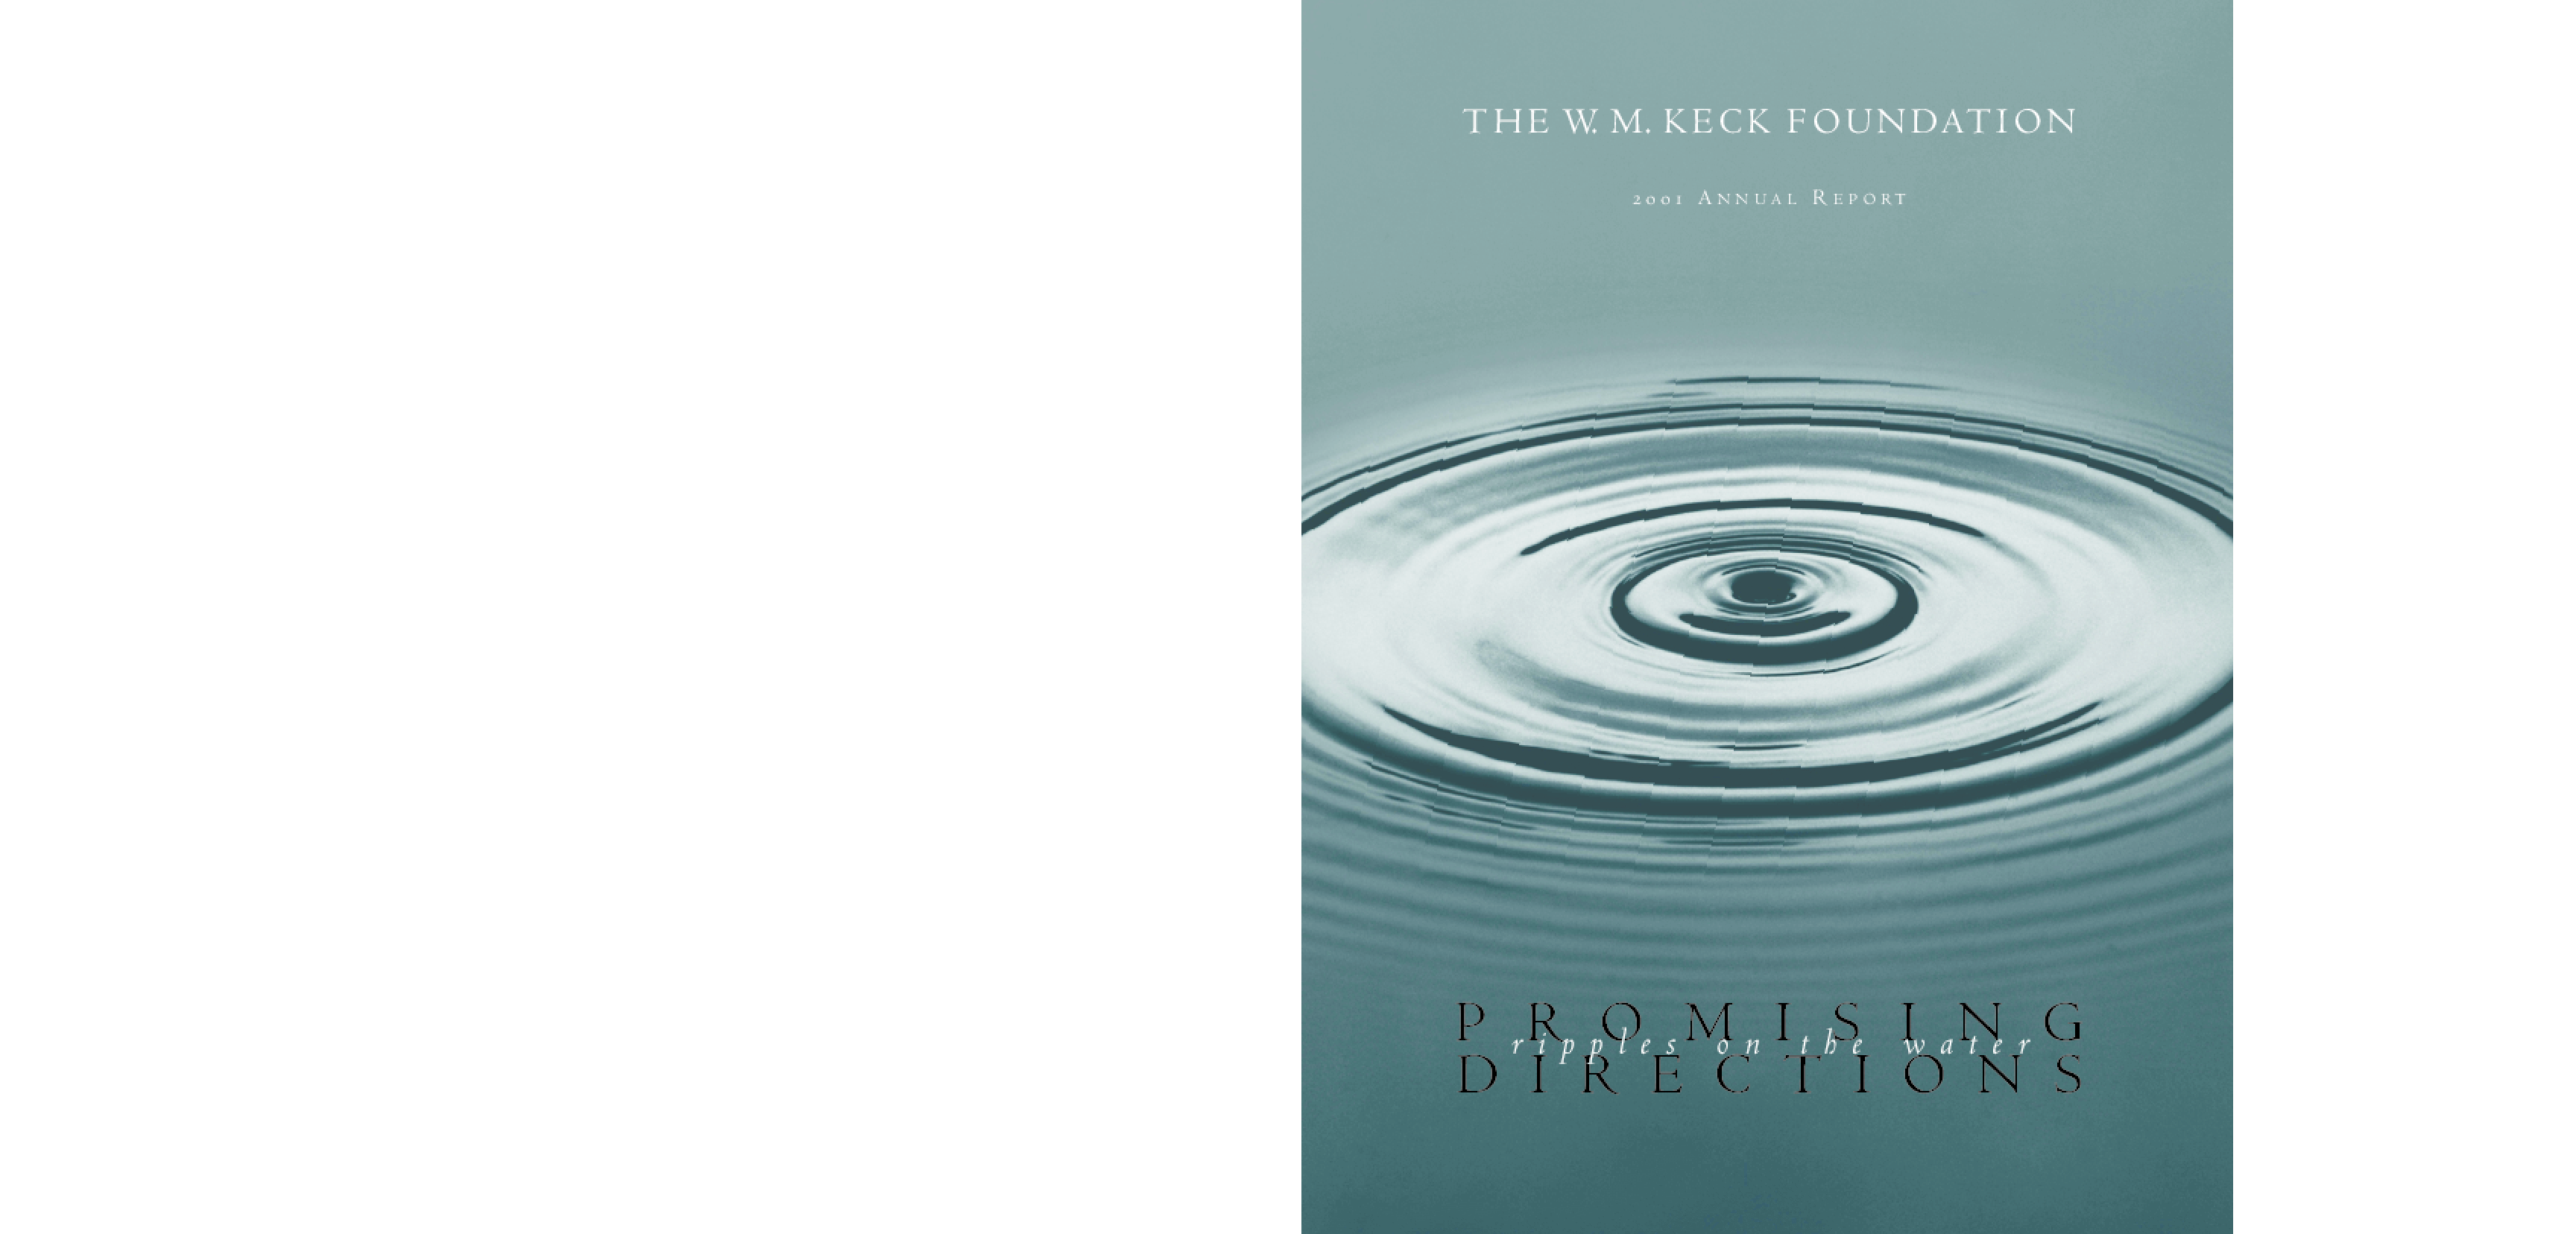 W. M. Keck Foundation - 2001 Annual Report: Ripples on the Water